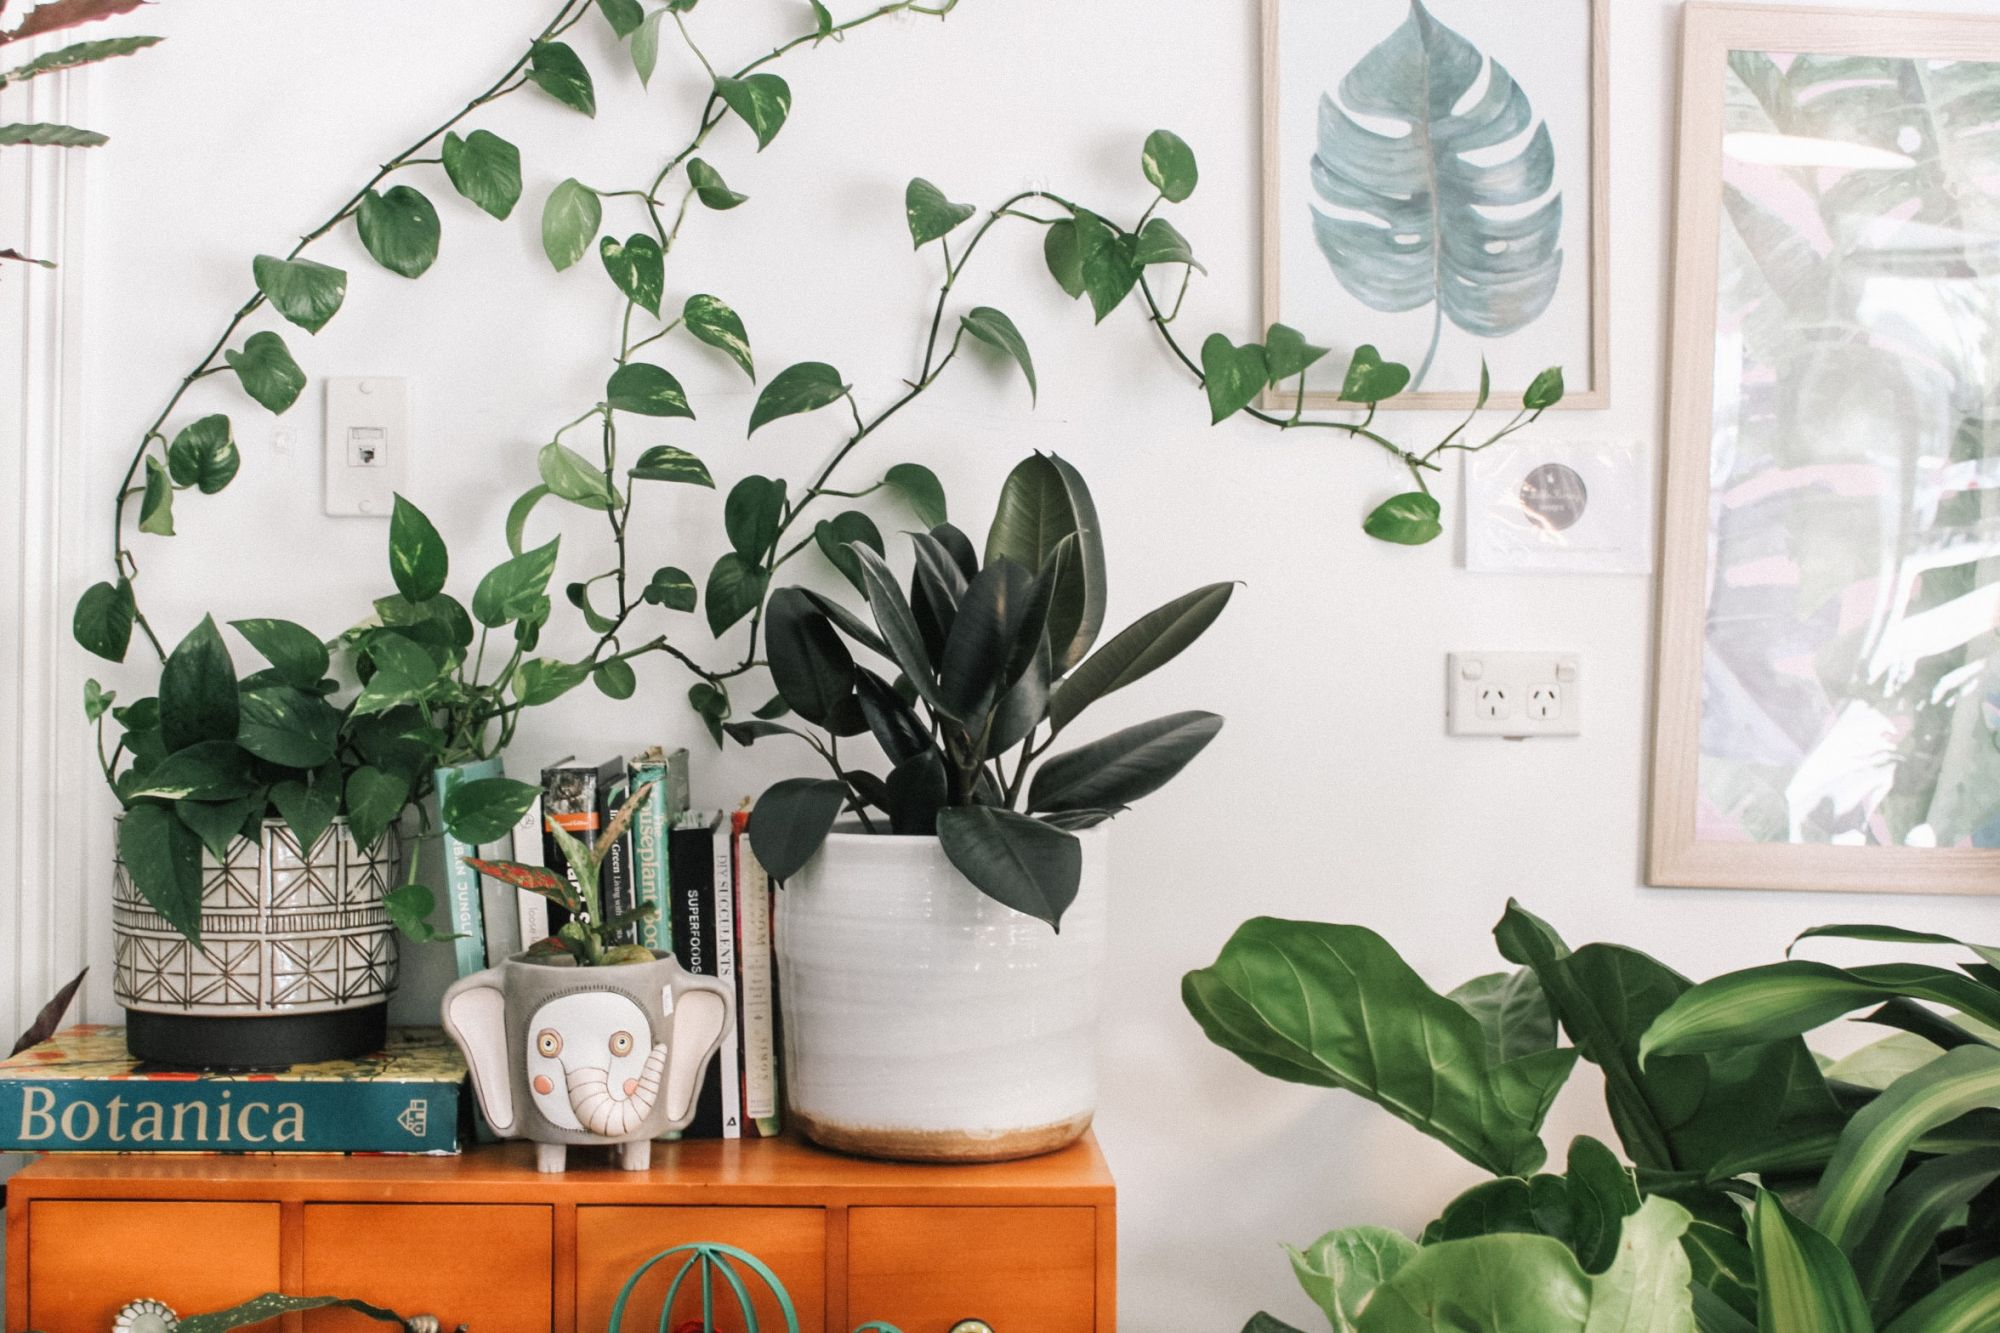 Where To Buy House Plants: 15 Online Stores For The Plantito and Plantita